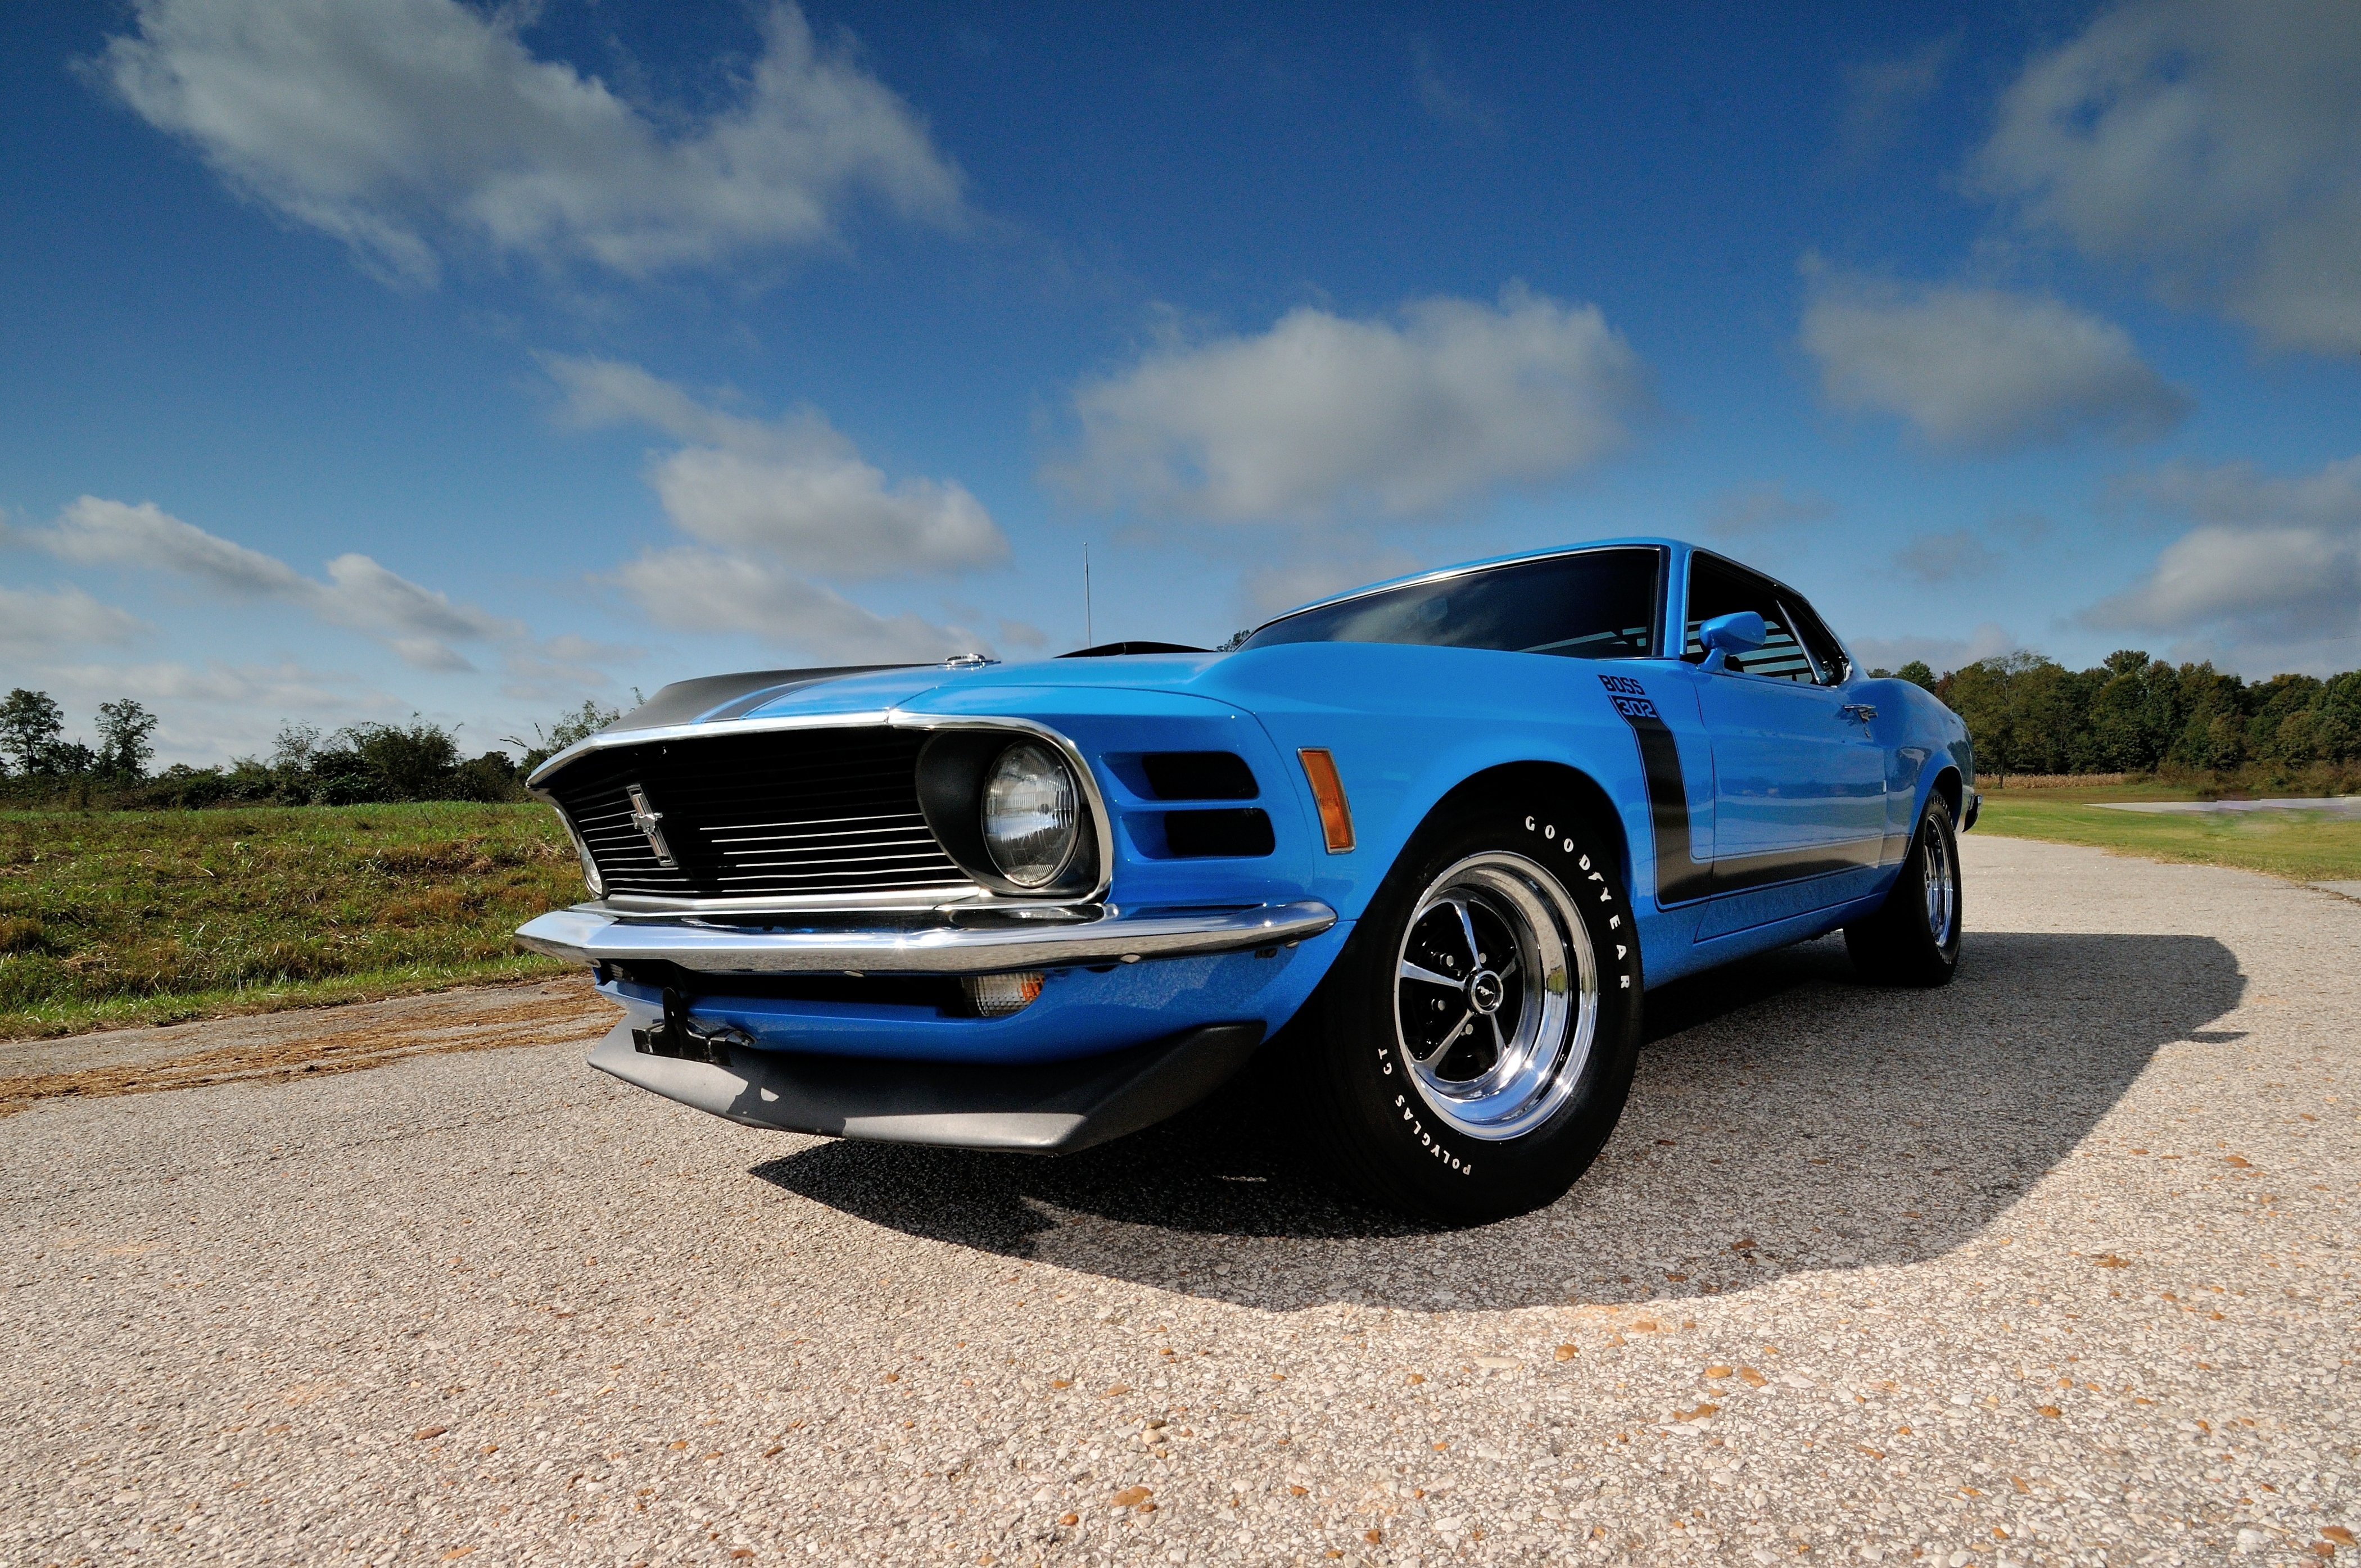 1970 ford mustang boss 302 fastback muscle classic usa 4200x2790 09 wallpaper 4200x2790 647506 wallpaperup